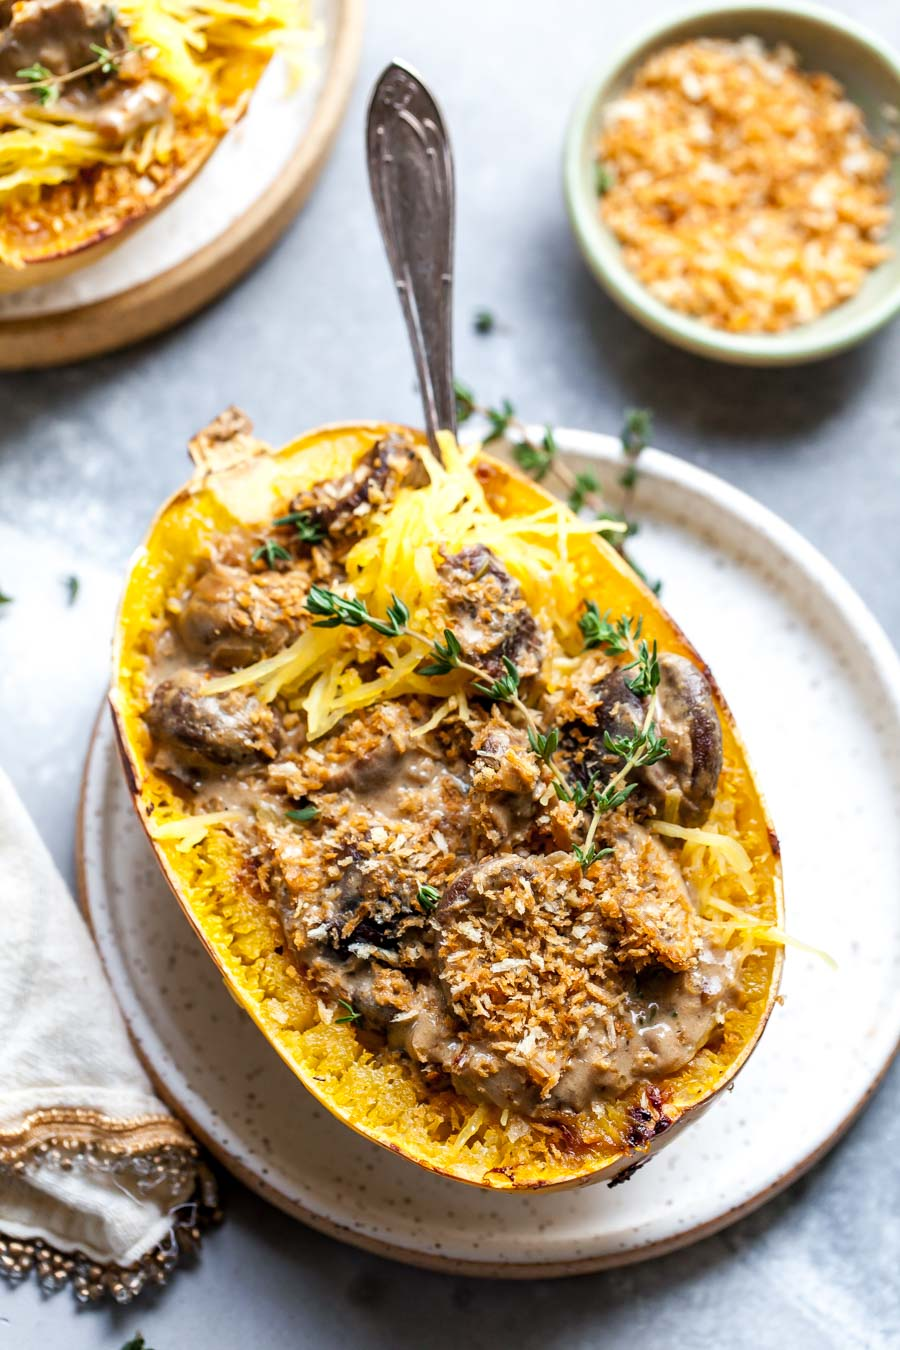 Stuffed Spaghetti Squash with Mushroom Stroganoff Sauce